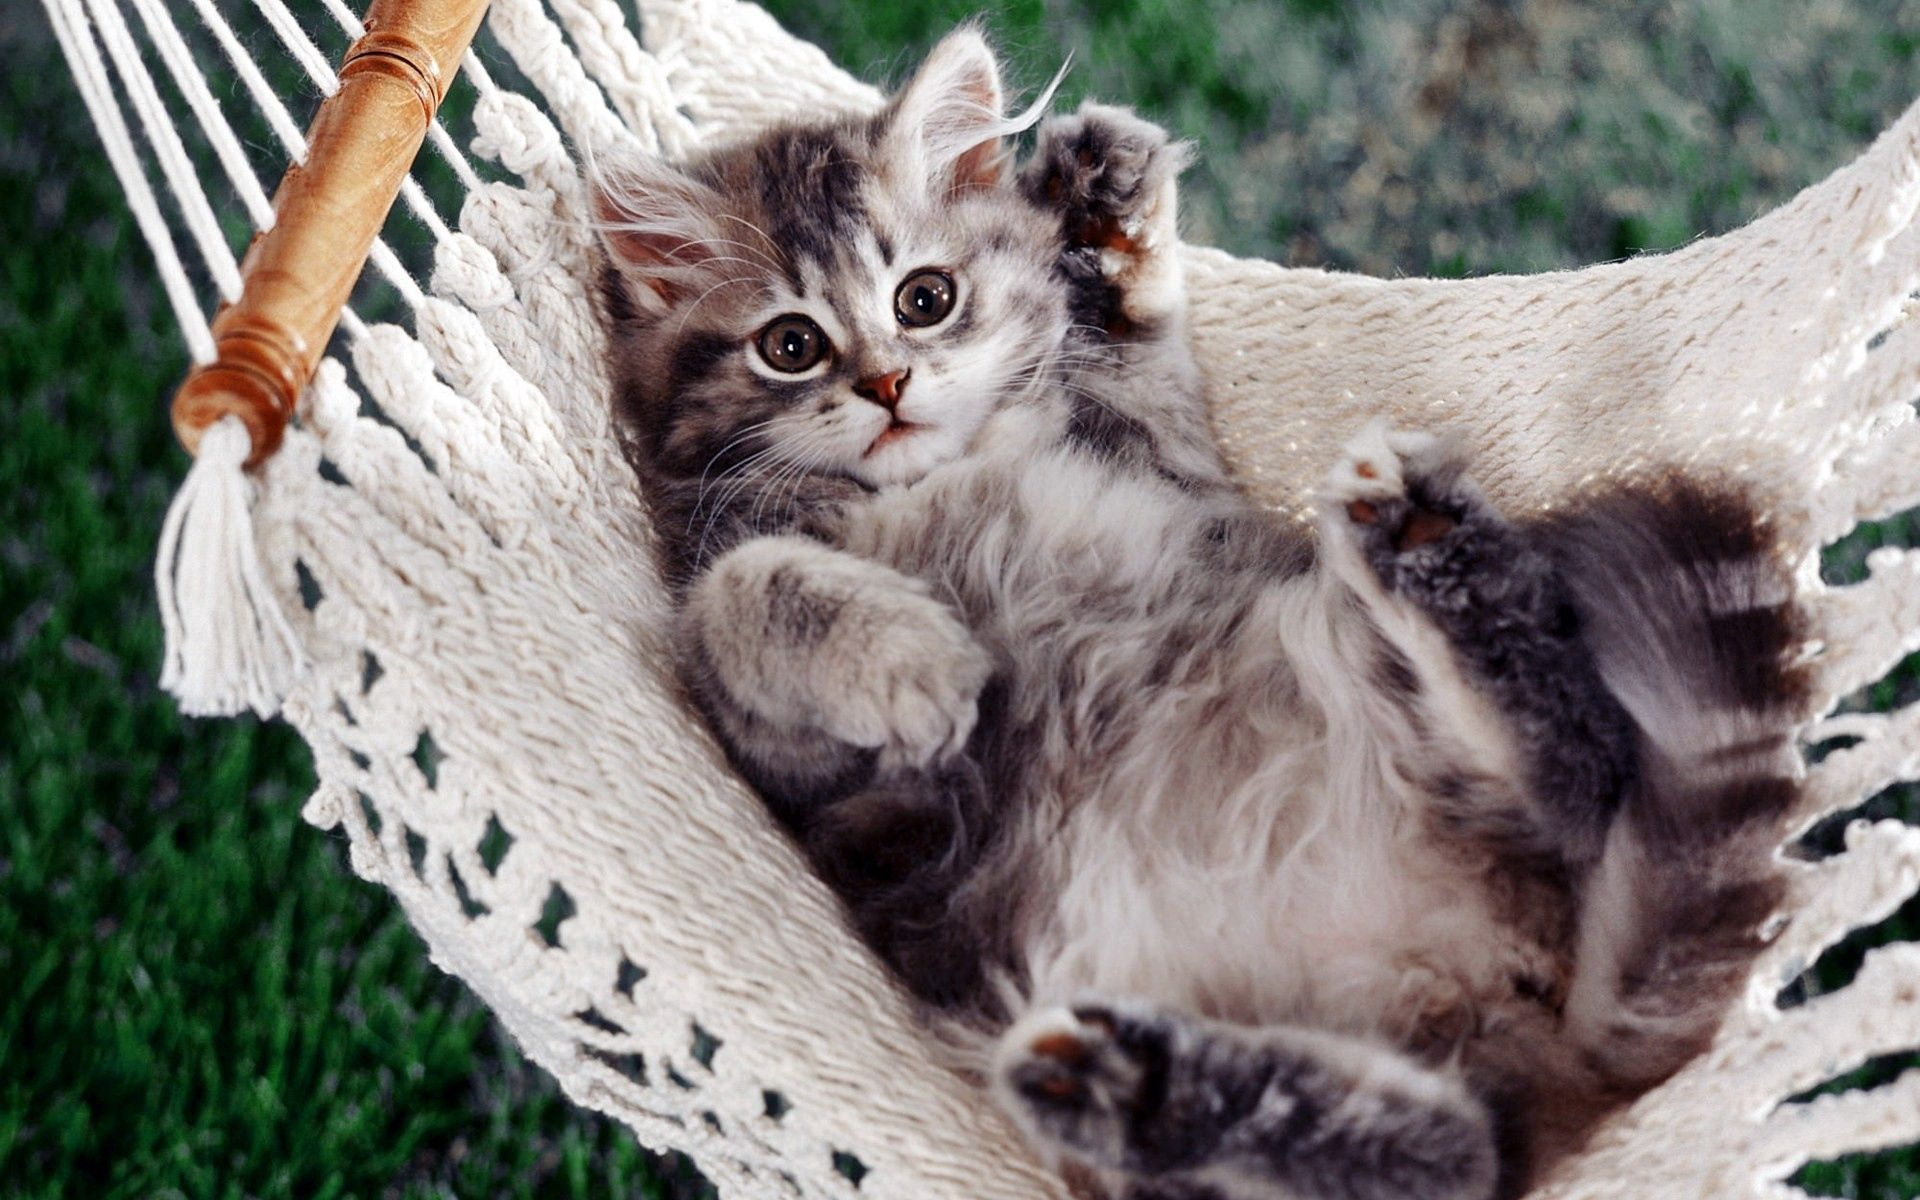 125221 download wallpaper Animals, Kitty, Kitten, Hammock, To Lie Down, Lie, Paw, Fluffy screensavers and pictures for free